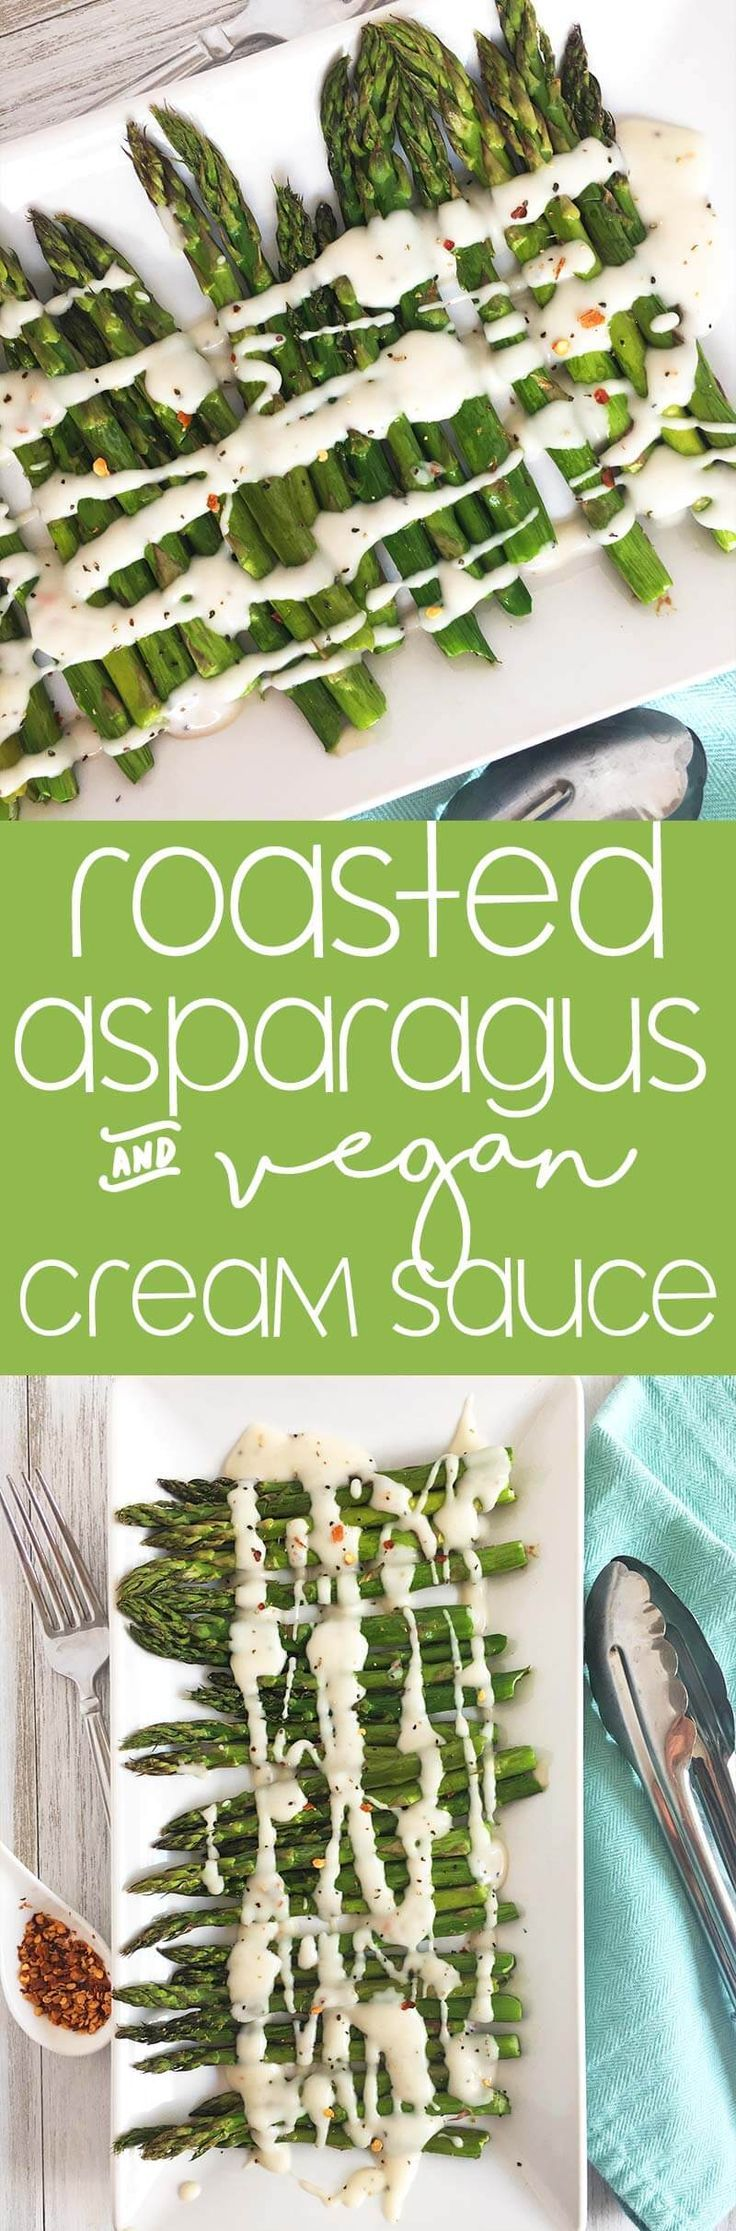 Roasted Asparagus with Cream Sauce - Vegan Side Dish Recipe | thecrunchychronicles.com